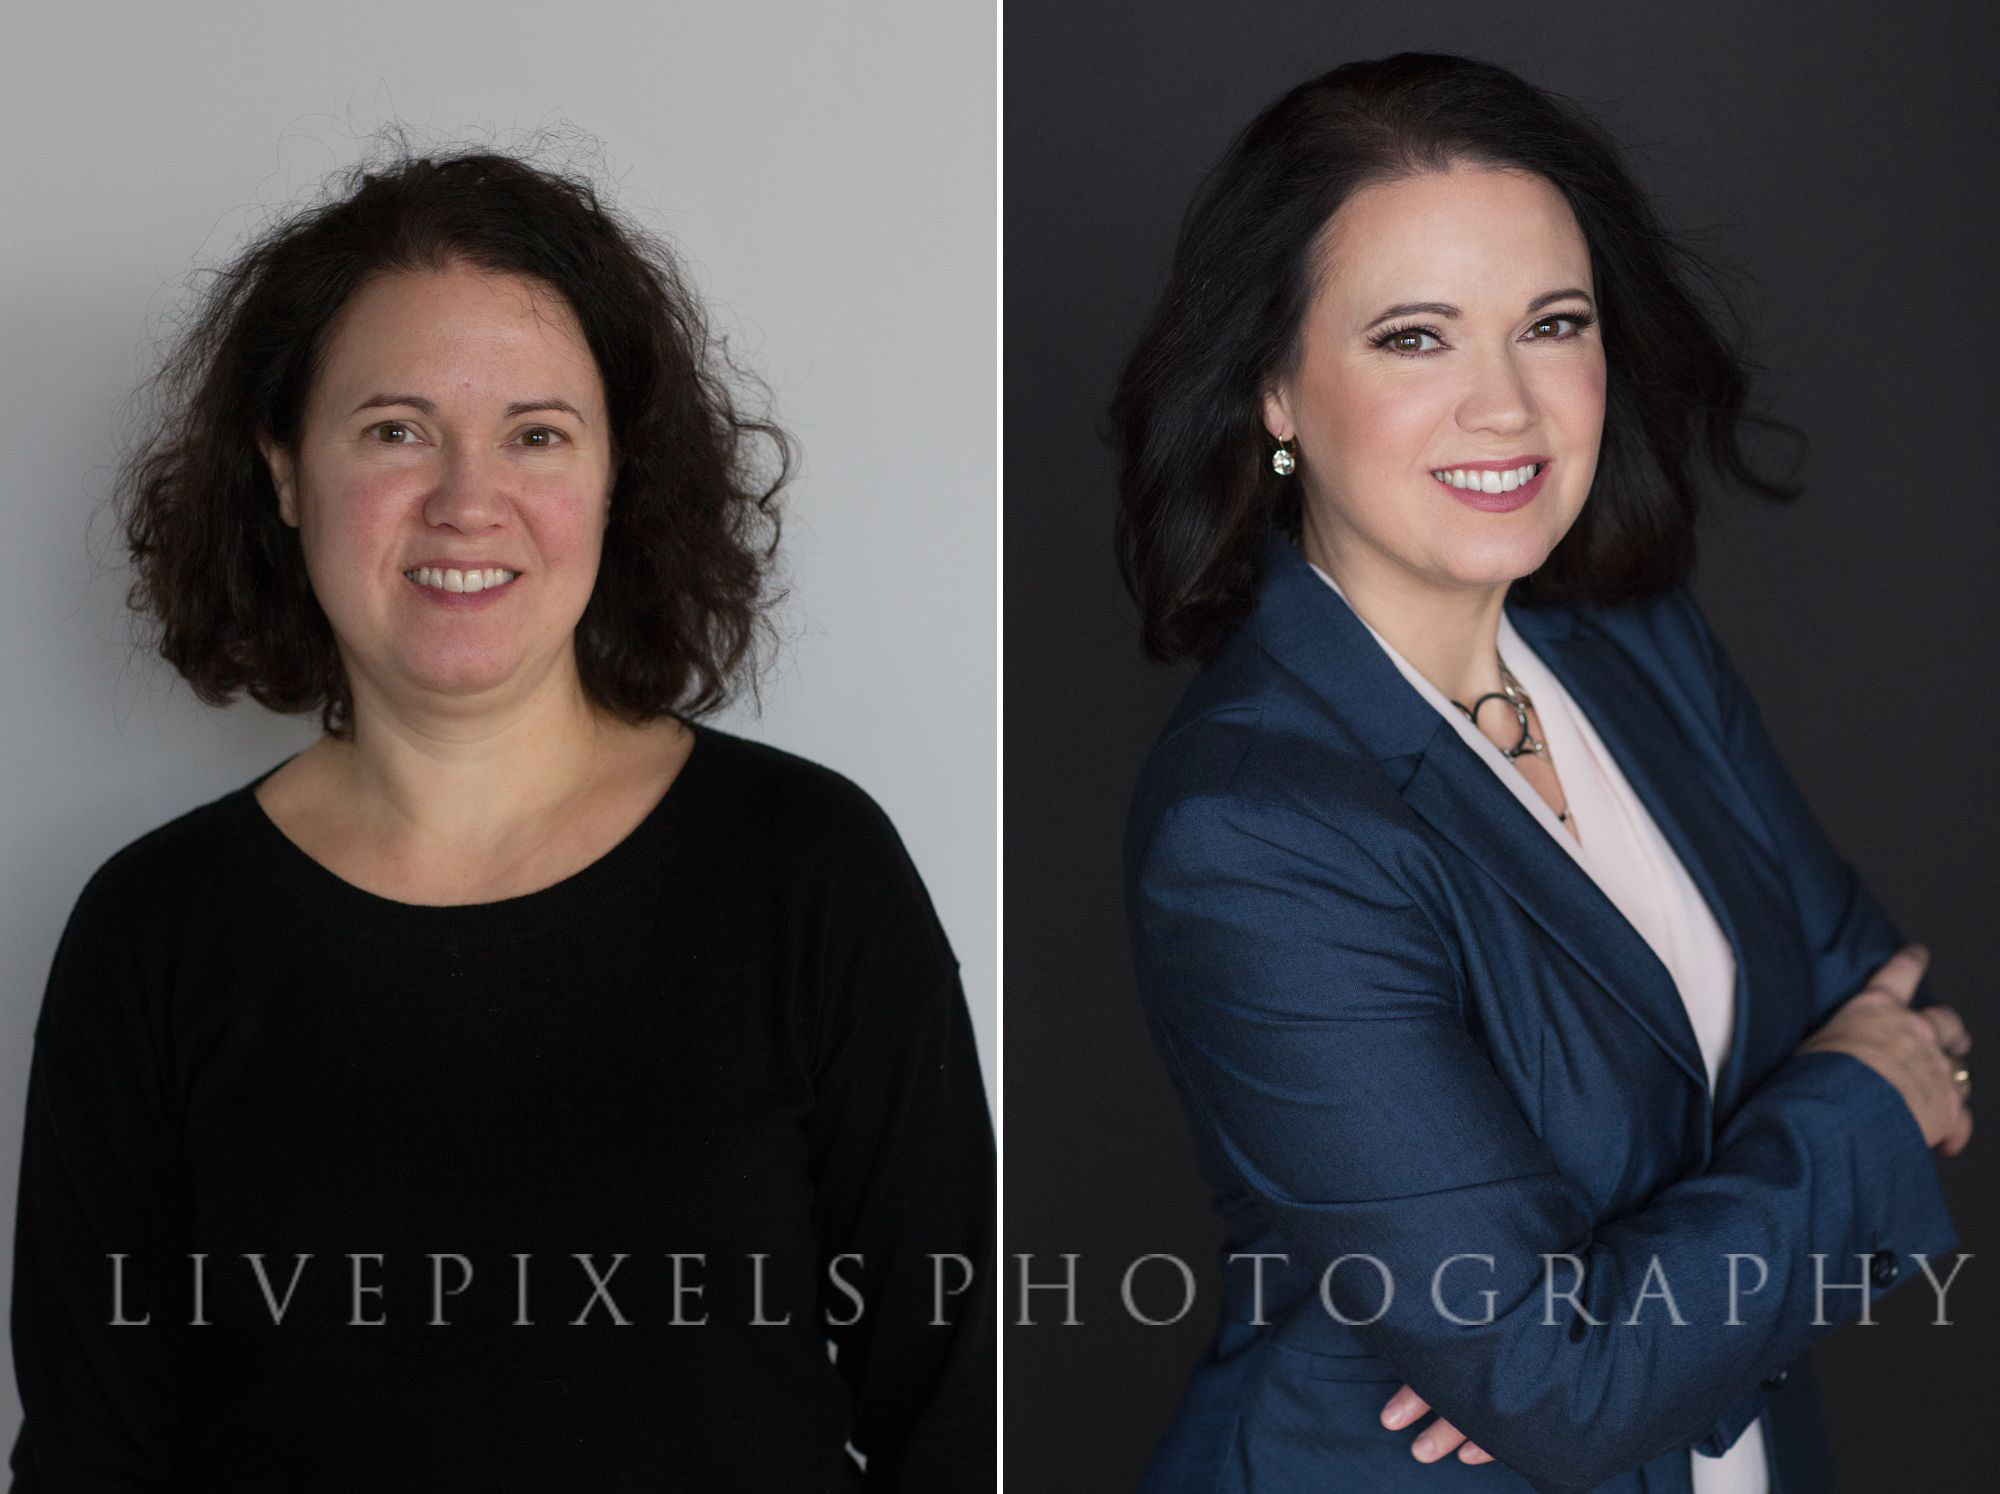 Before & After Makeover Portraits - Livepixels Photography, Toronto / livepixelsphotography.com